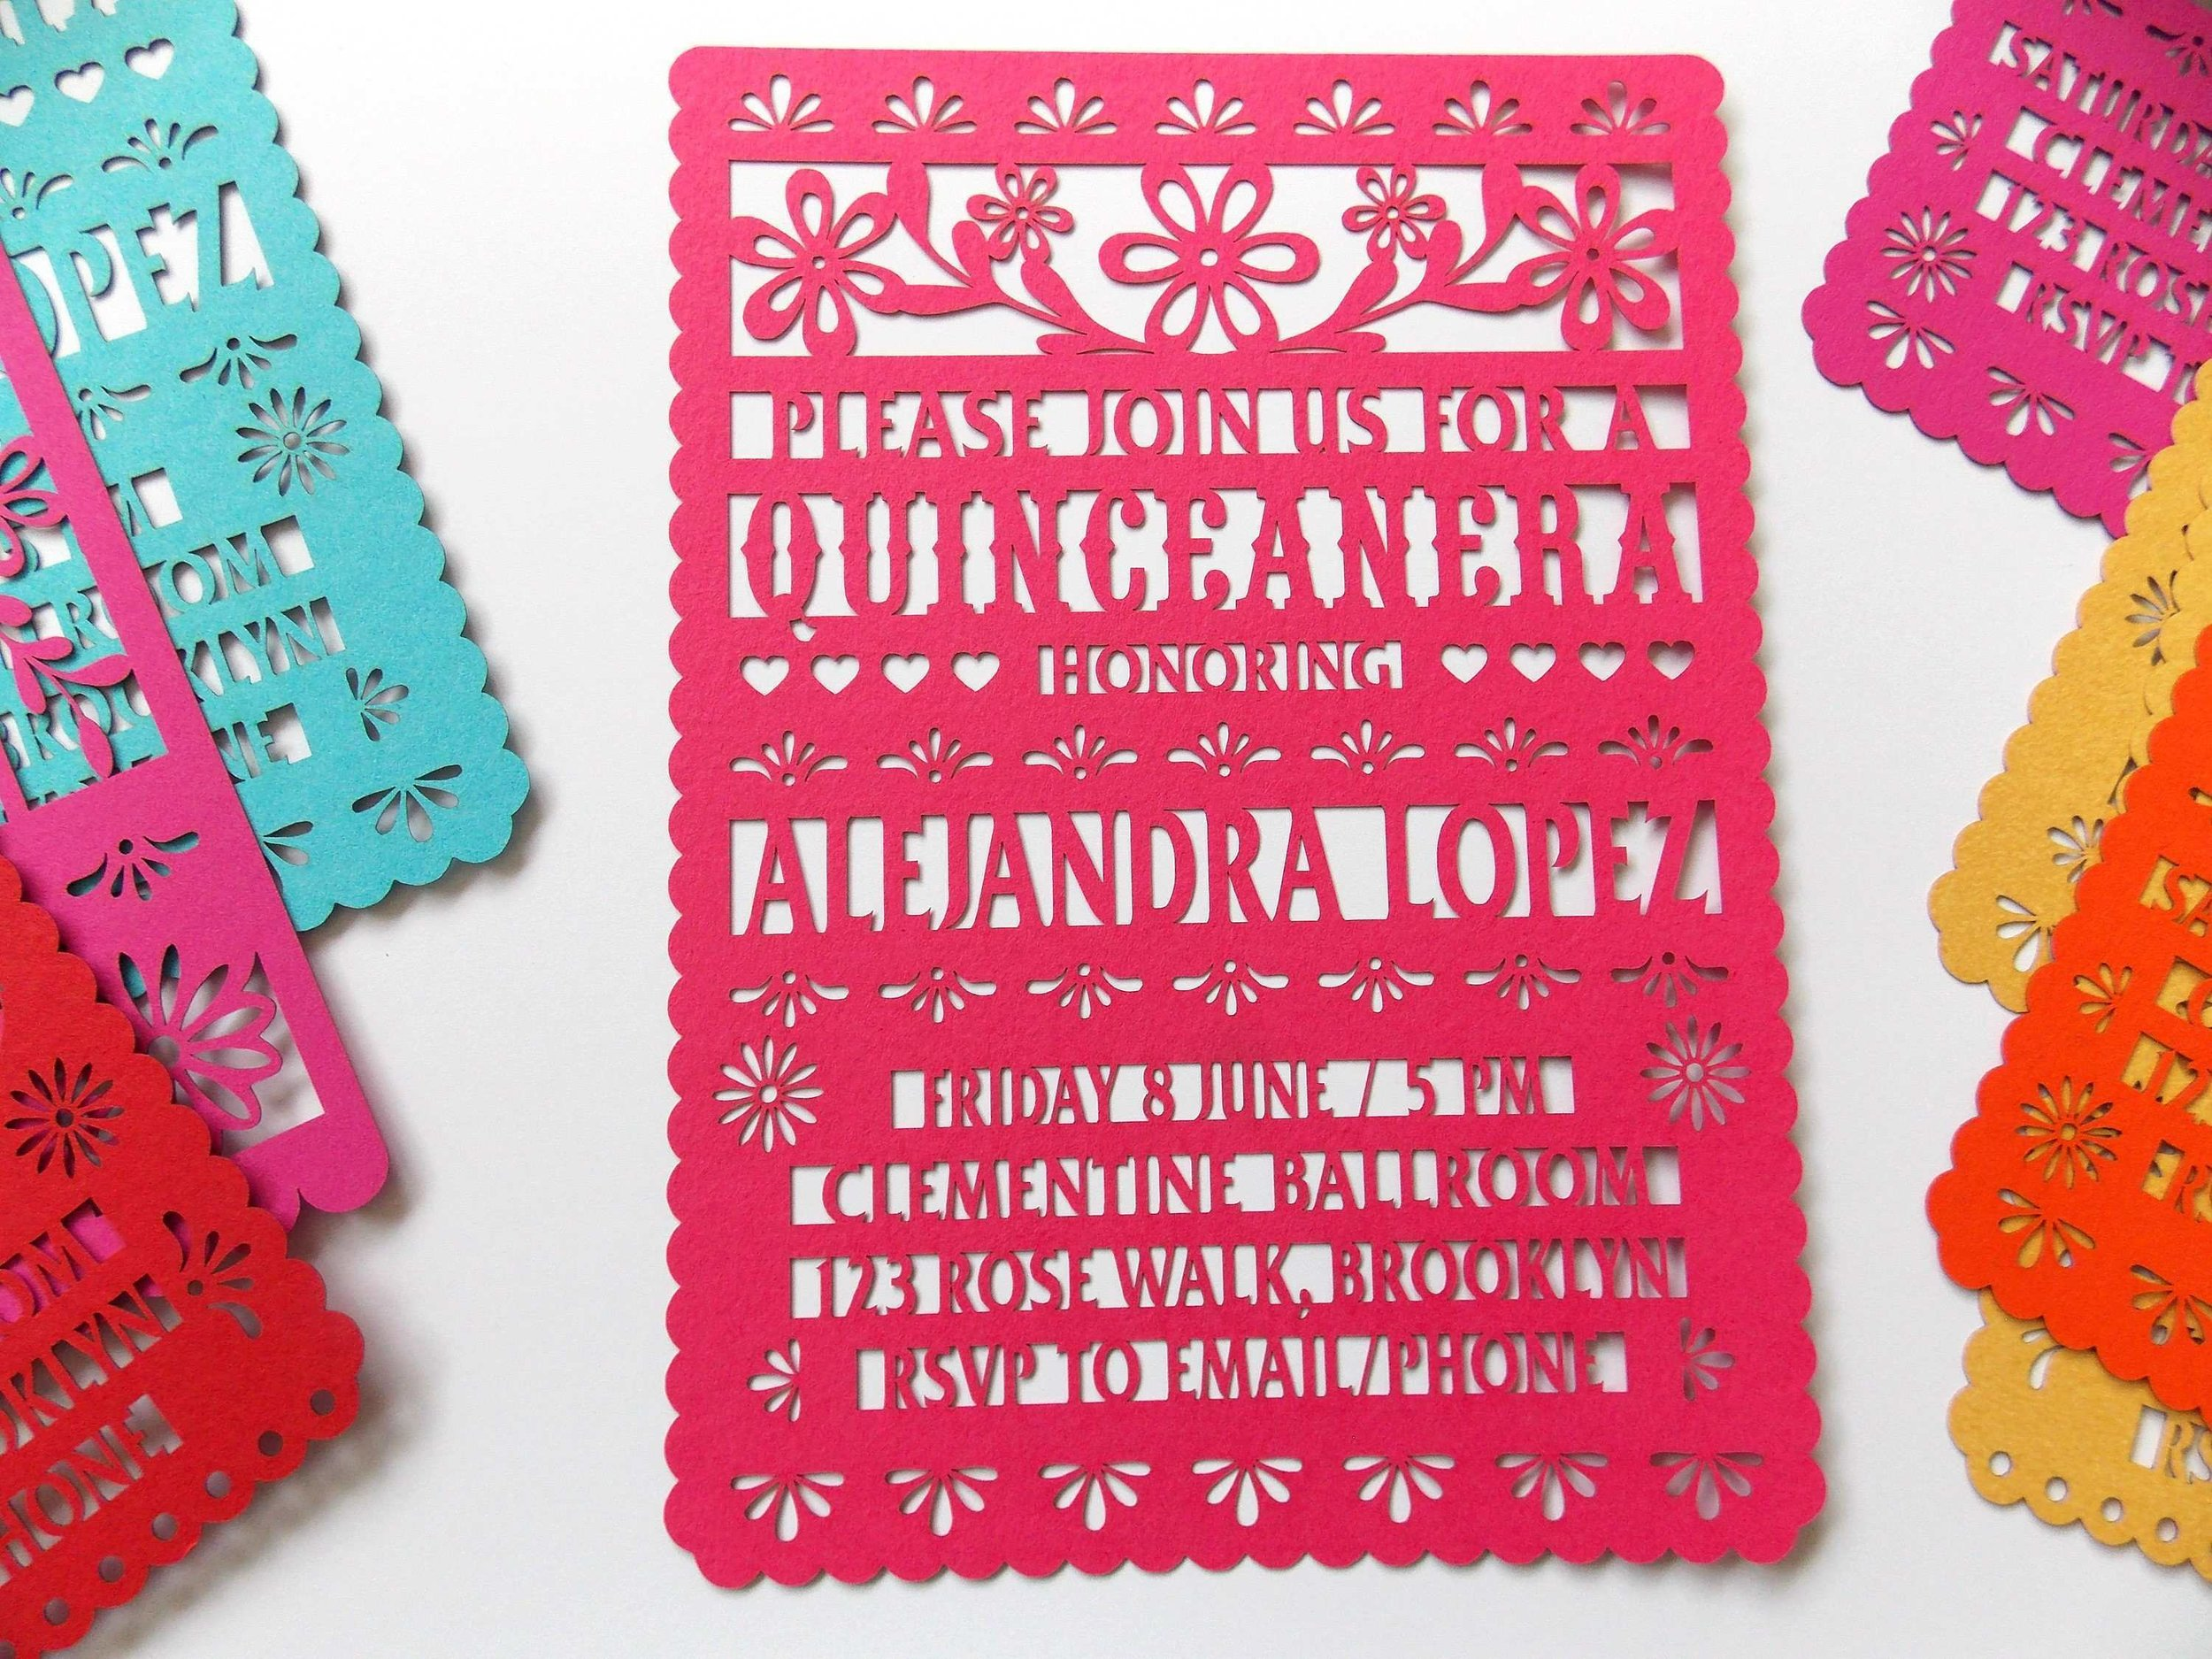 quince invitation wording Luxury Quinceanera Invitations Quinceanera Invites Papel picado